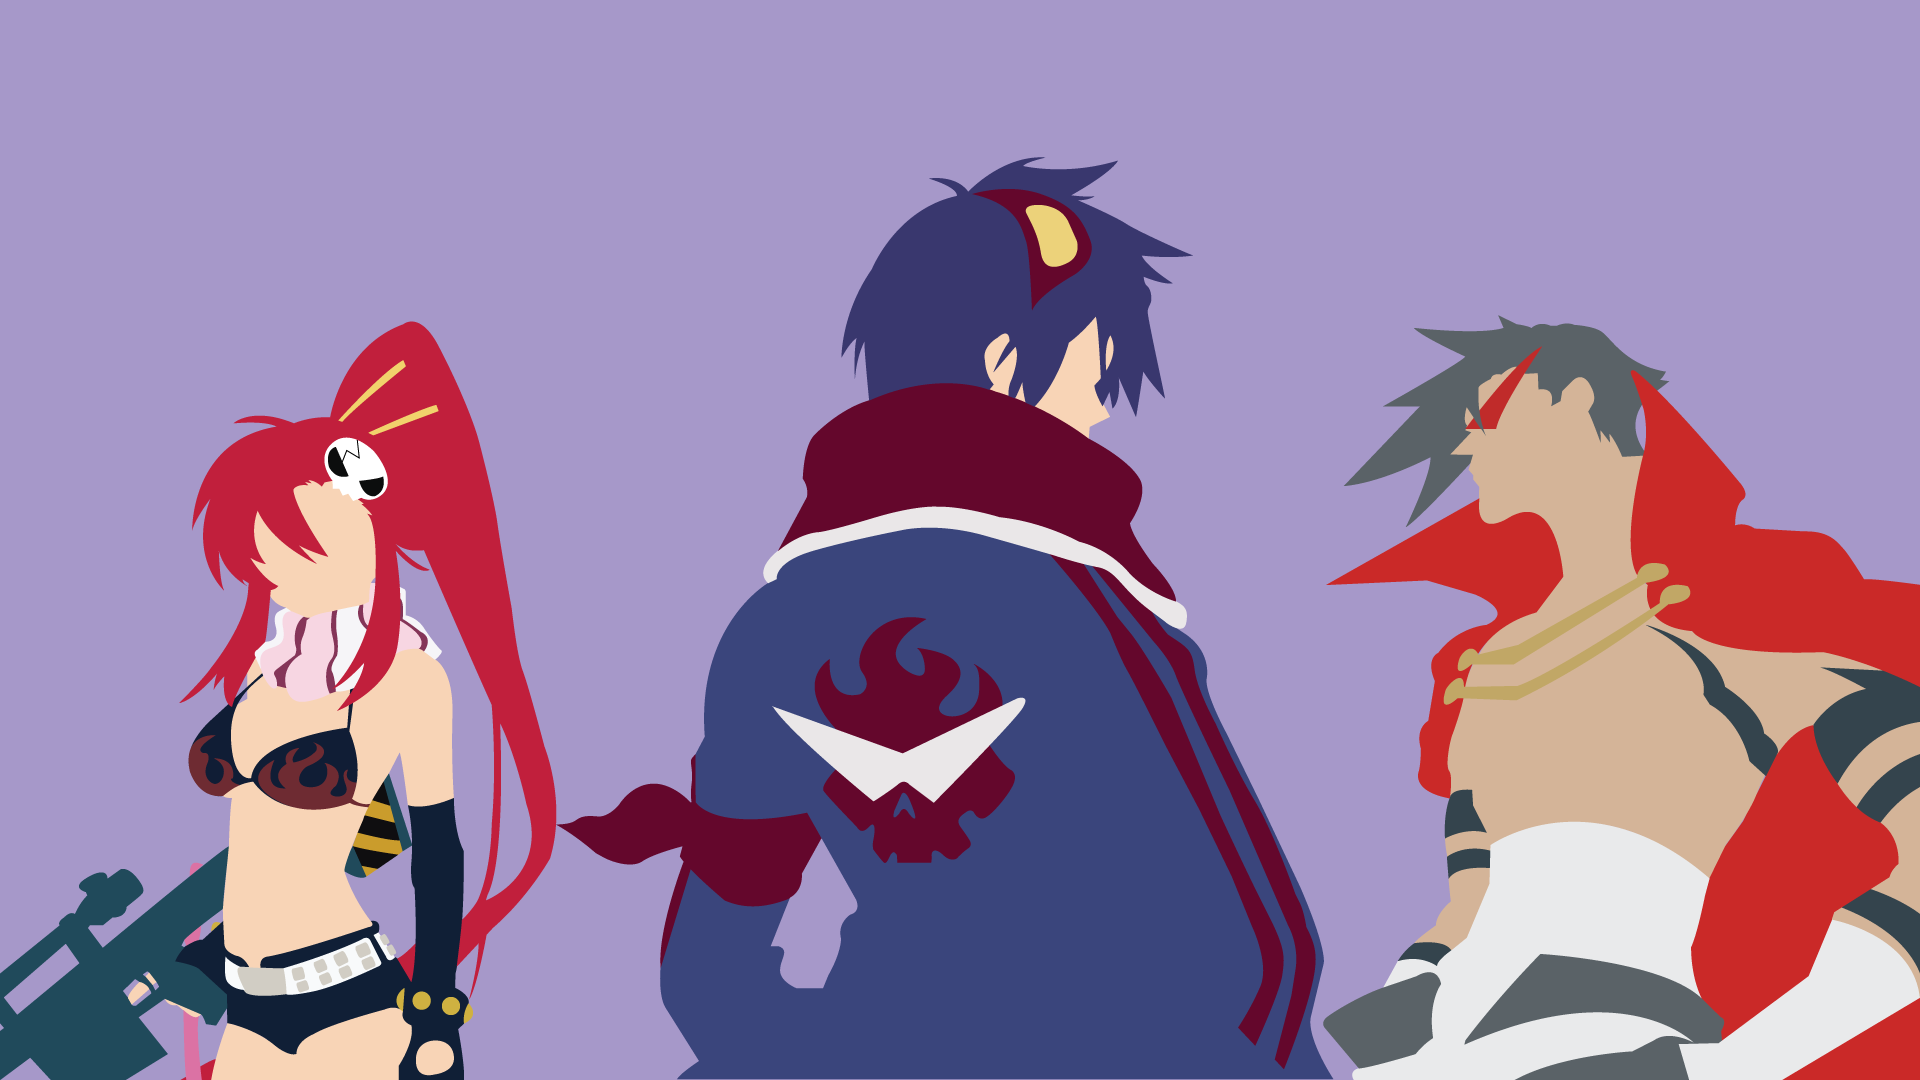 1000+ images about Tengen Toppa Gurren Lagann on Pinterest